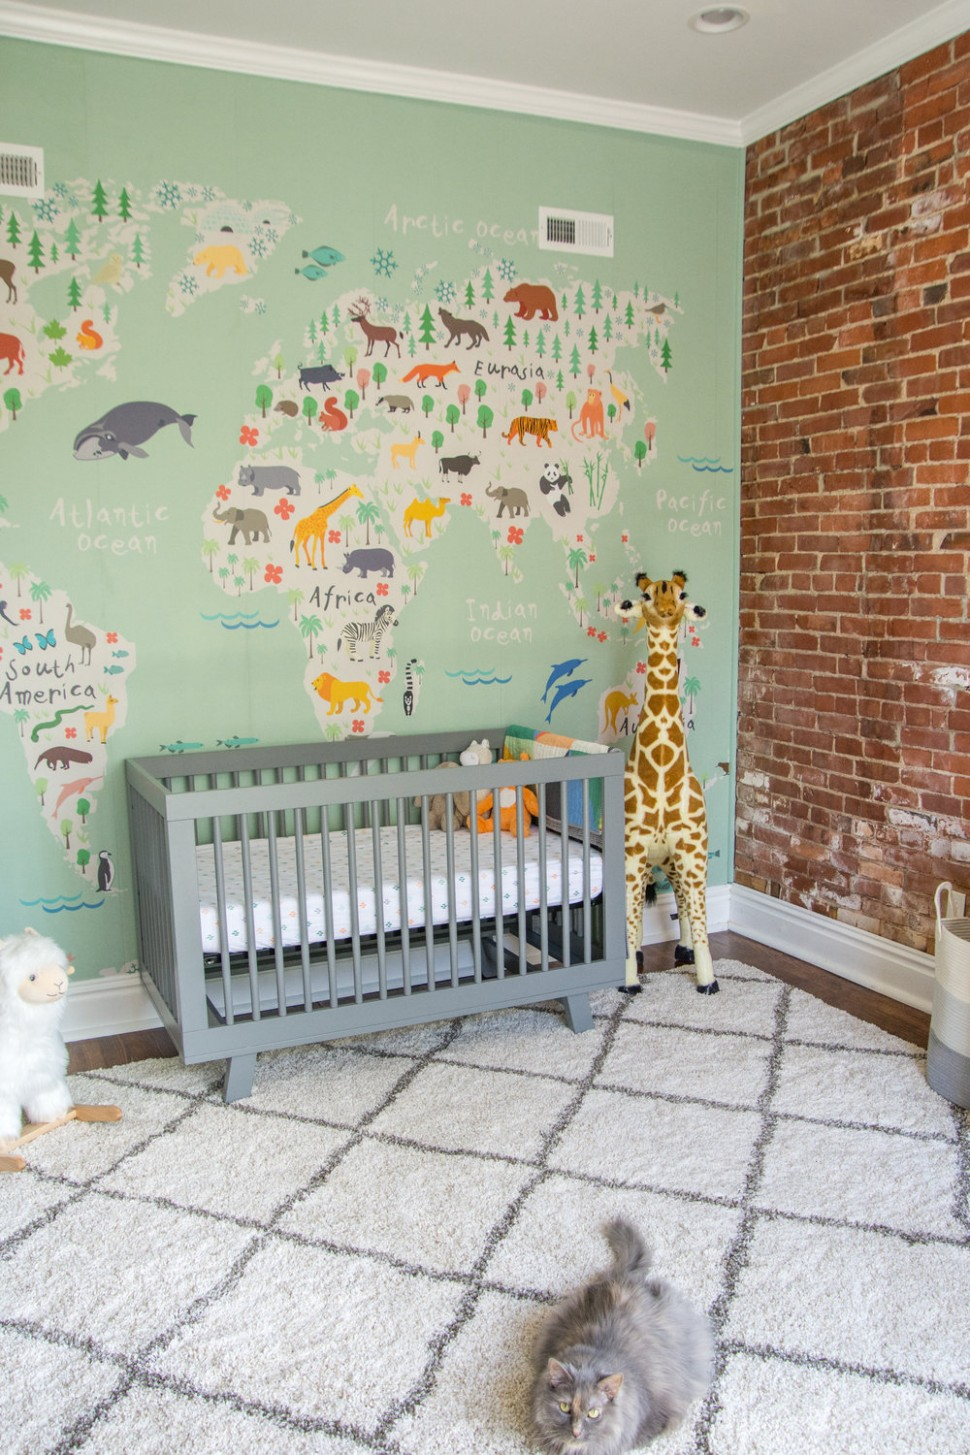 A Gender-Neutral Travel Inspired Nursery  Modern Animal Safari  - Baby Room Pacific Place